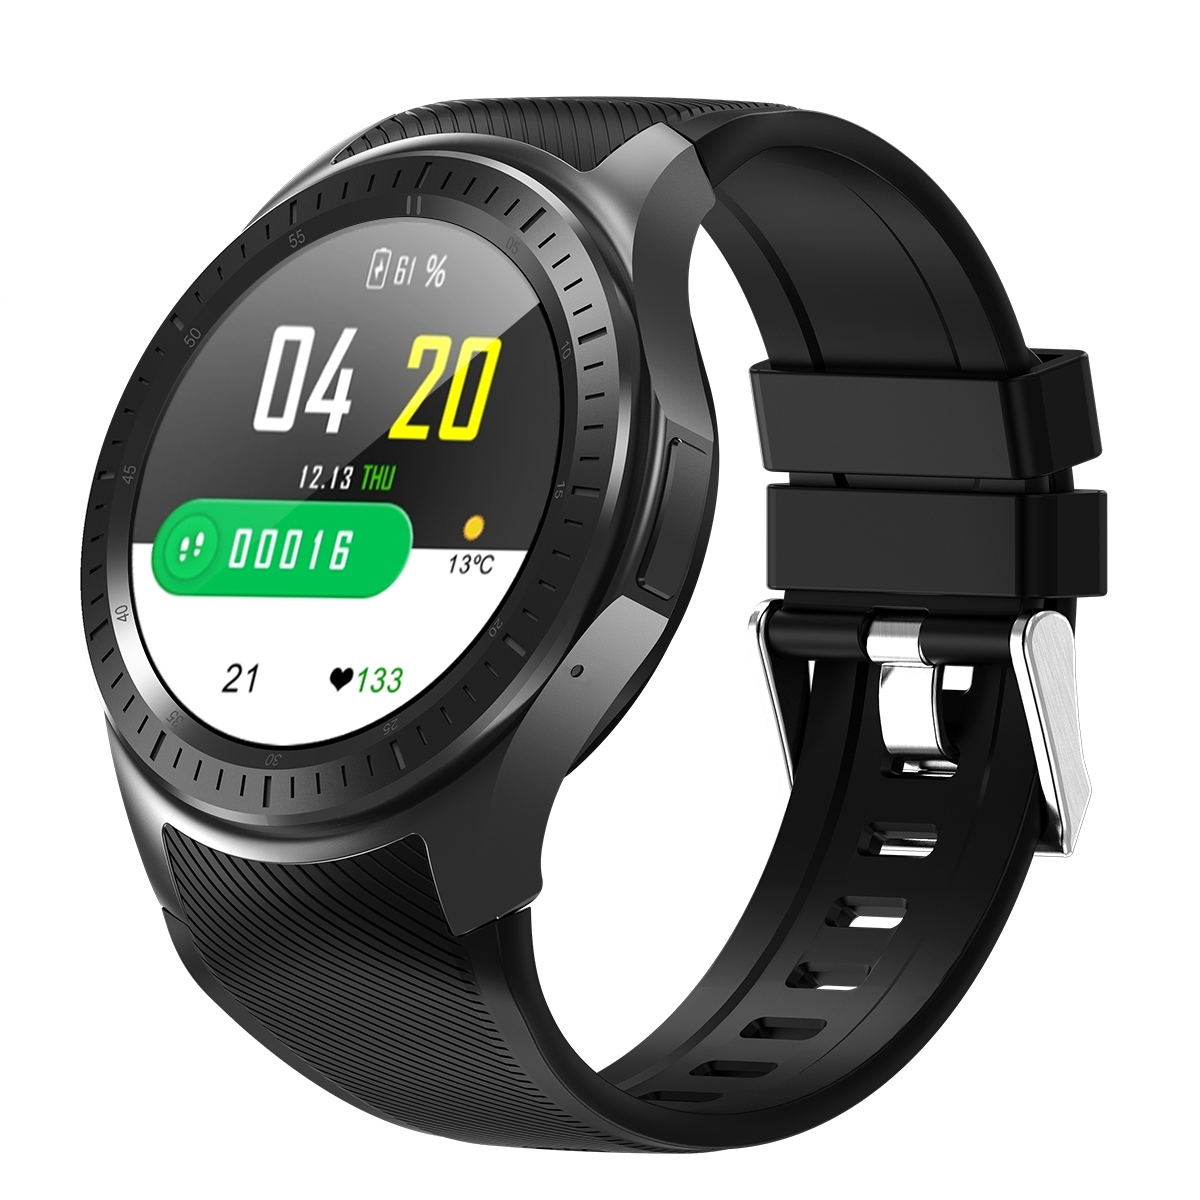 Dm368 Plus <font><b>Smart</b></font> <font><b>Watch</b></font> Bluetooth Smartwatch 4G <font><b>Mt6739</b></font> Android 5.1 Quad Core Wristwatch With Heart Rate Gps Wifi image